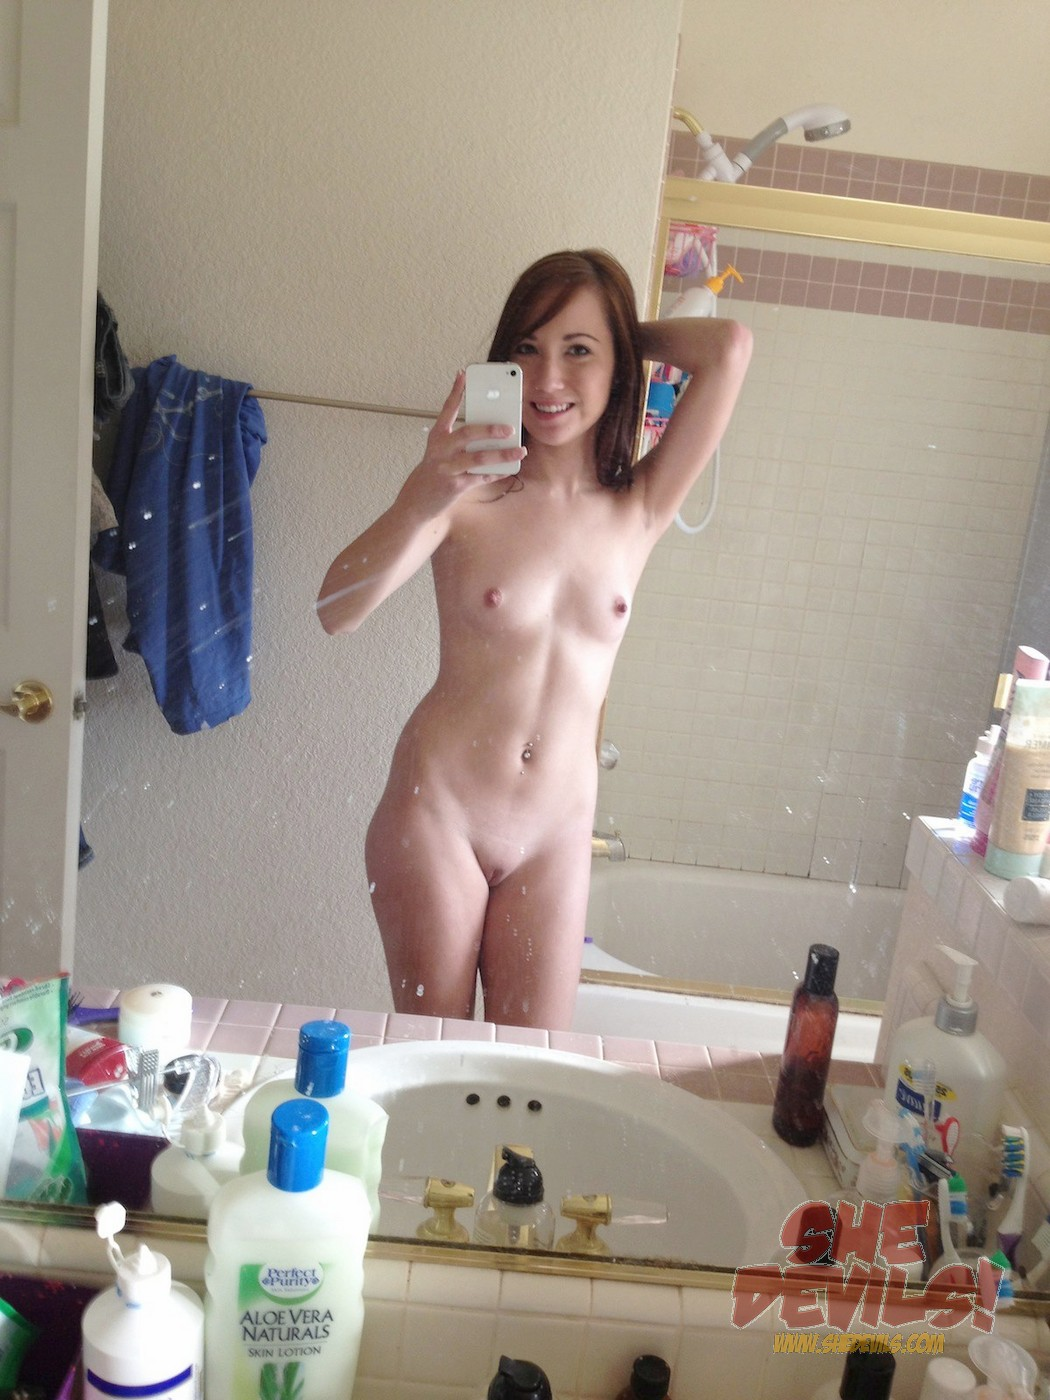 Sorry, Small nude teen self shot with you